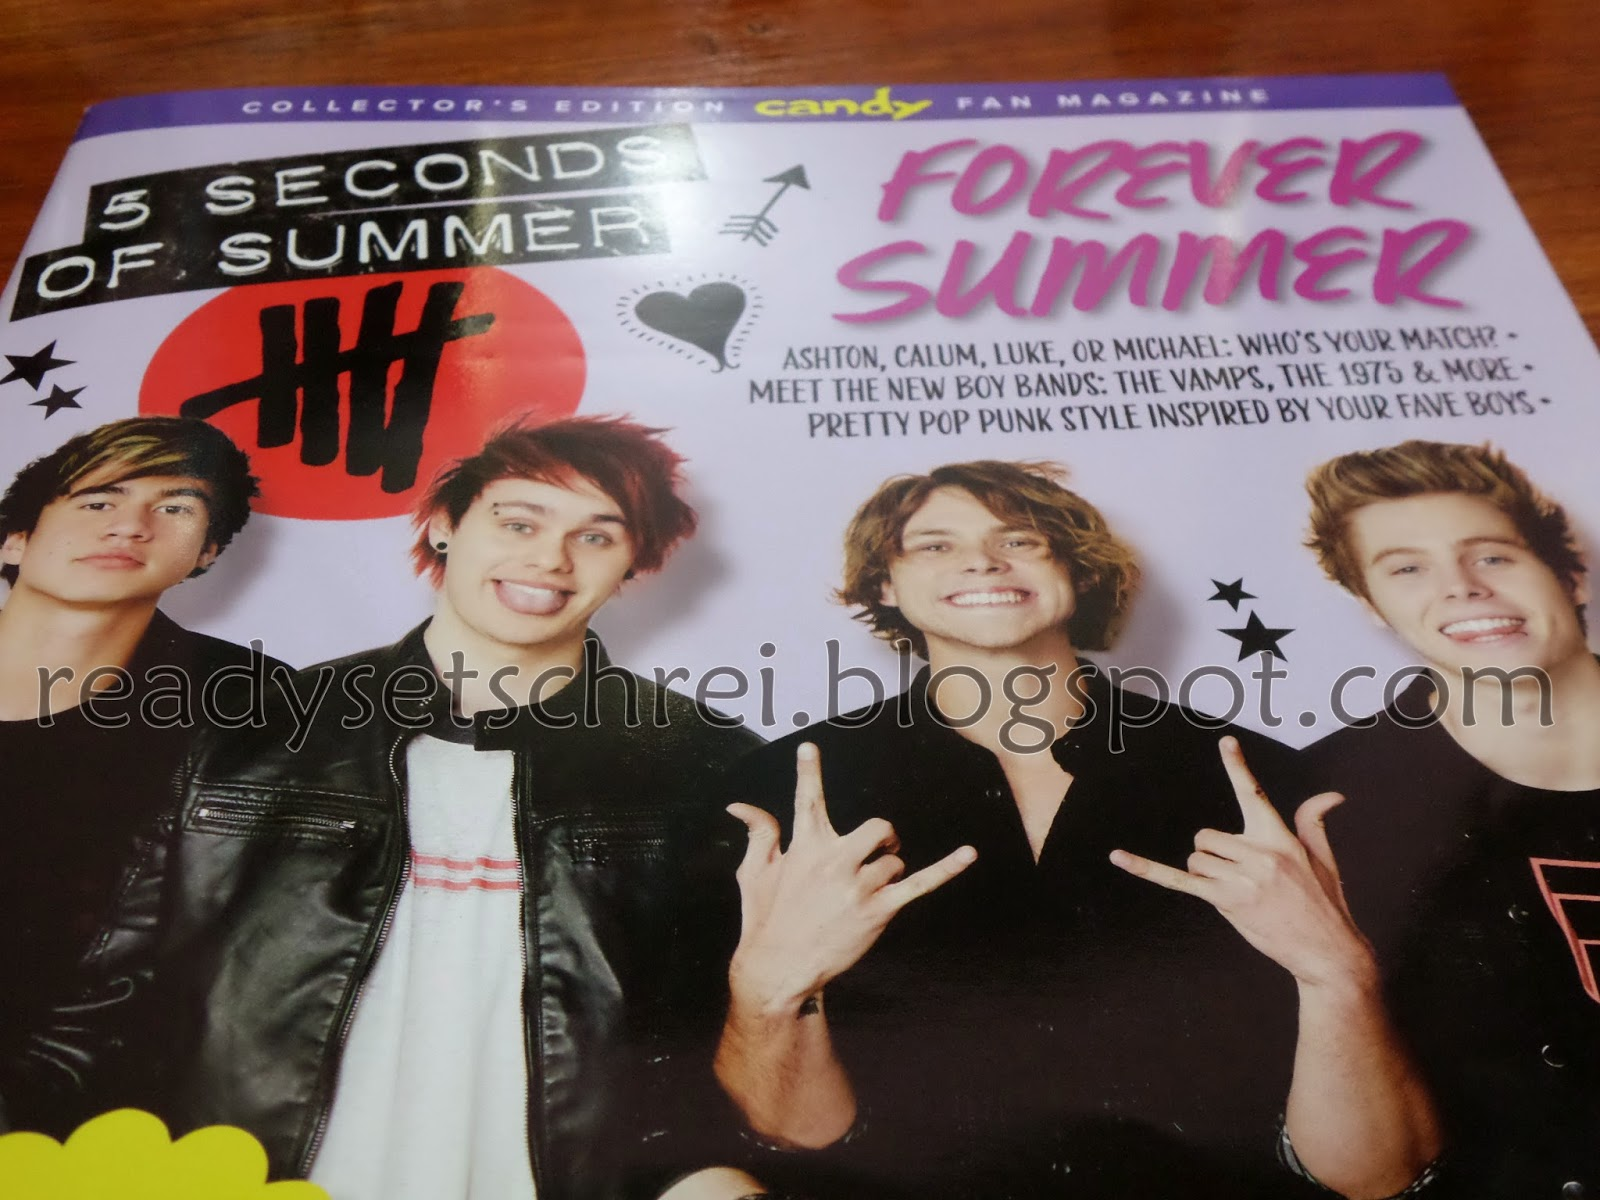 World behind my wall collectors edition candy fan magazine 5 seconds of summer 5sos on the cover yay my mum bought me this magazine yesterday and i am so happpppy it has 5sos stickers back to back poster m4hsunfo